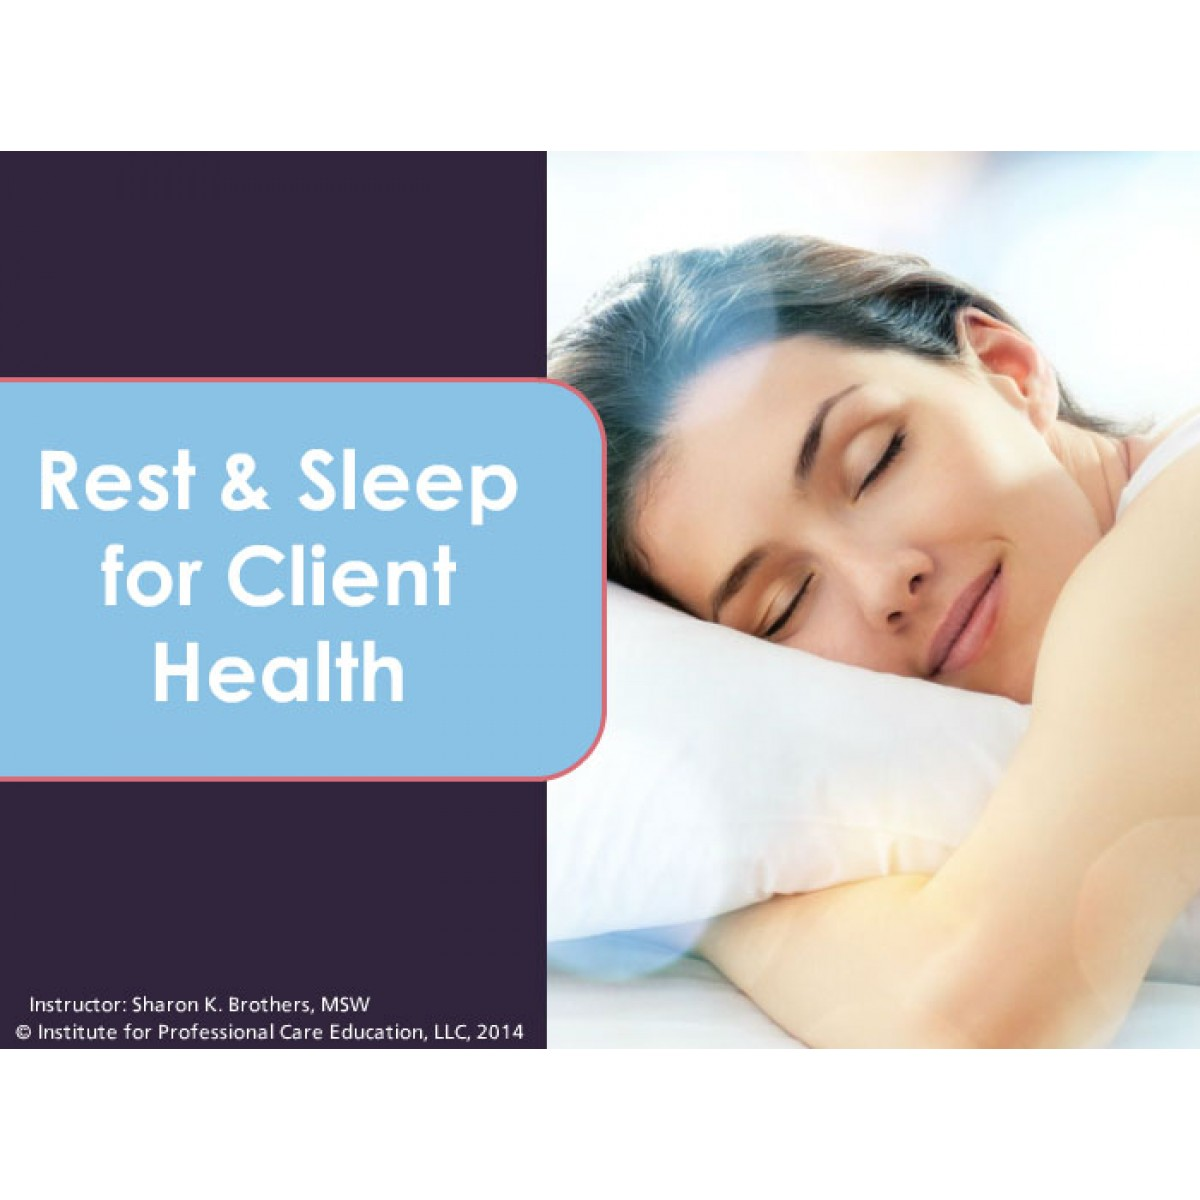 Rest and Sleep for Client Health | aQuire™ Training Solutions